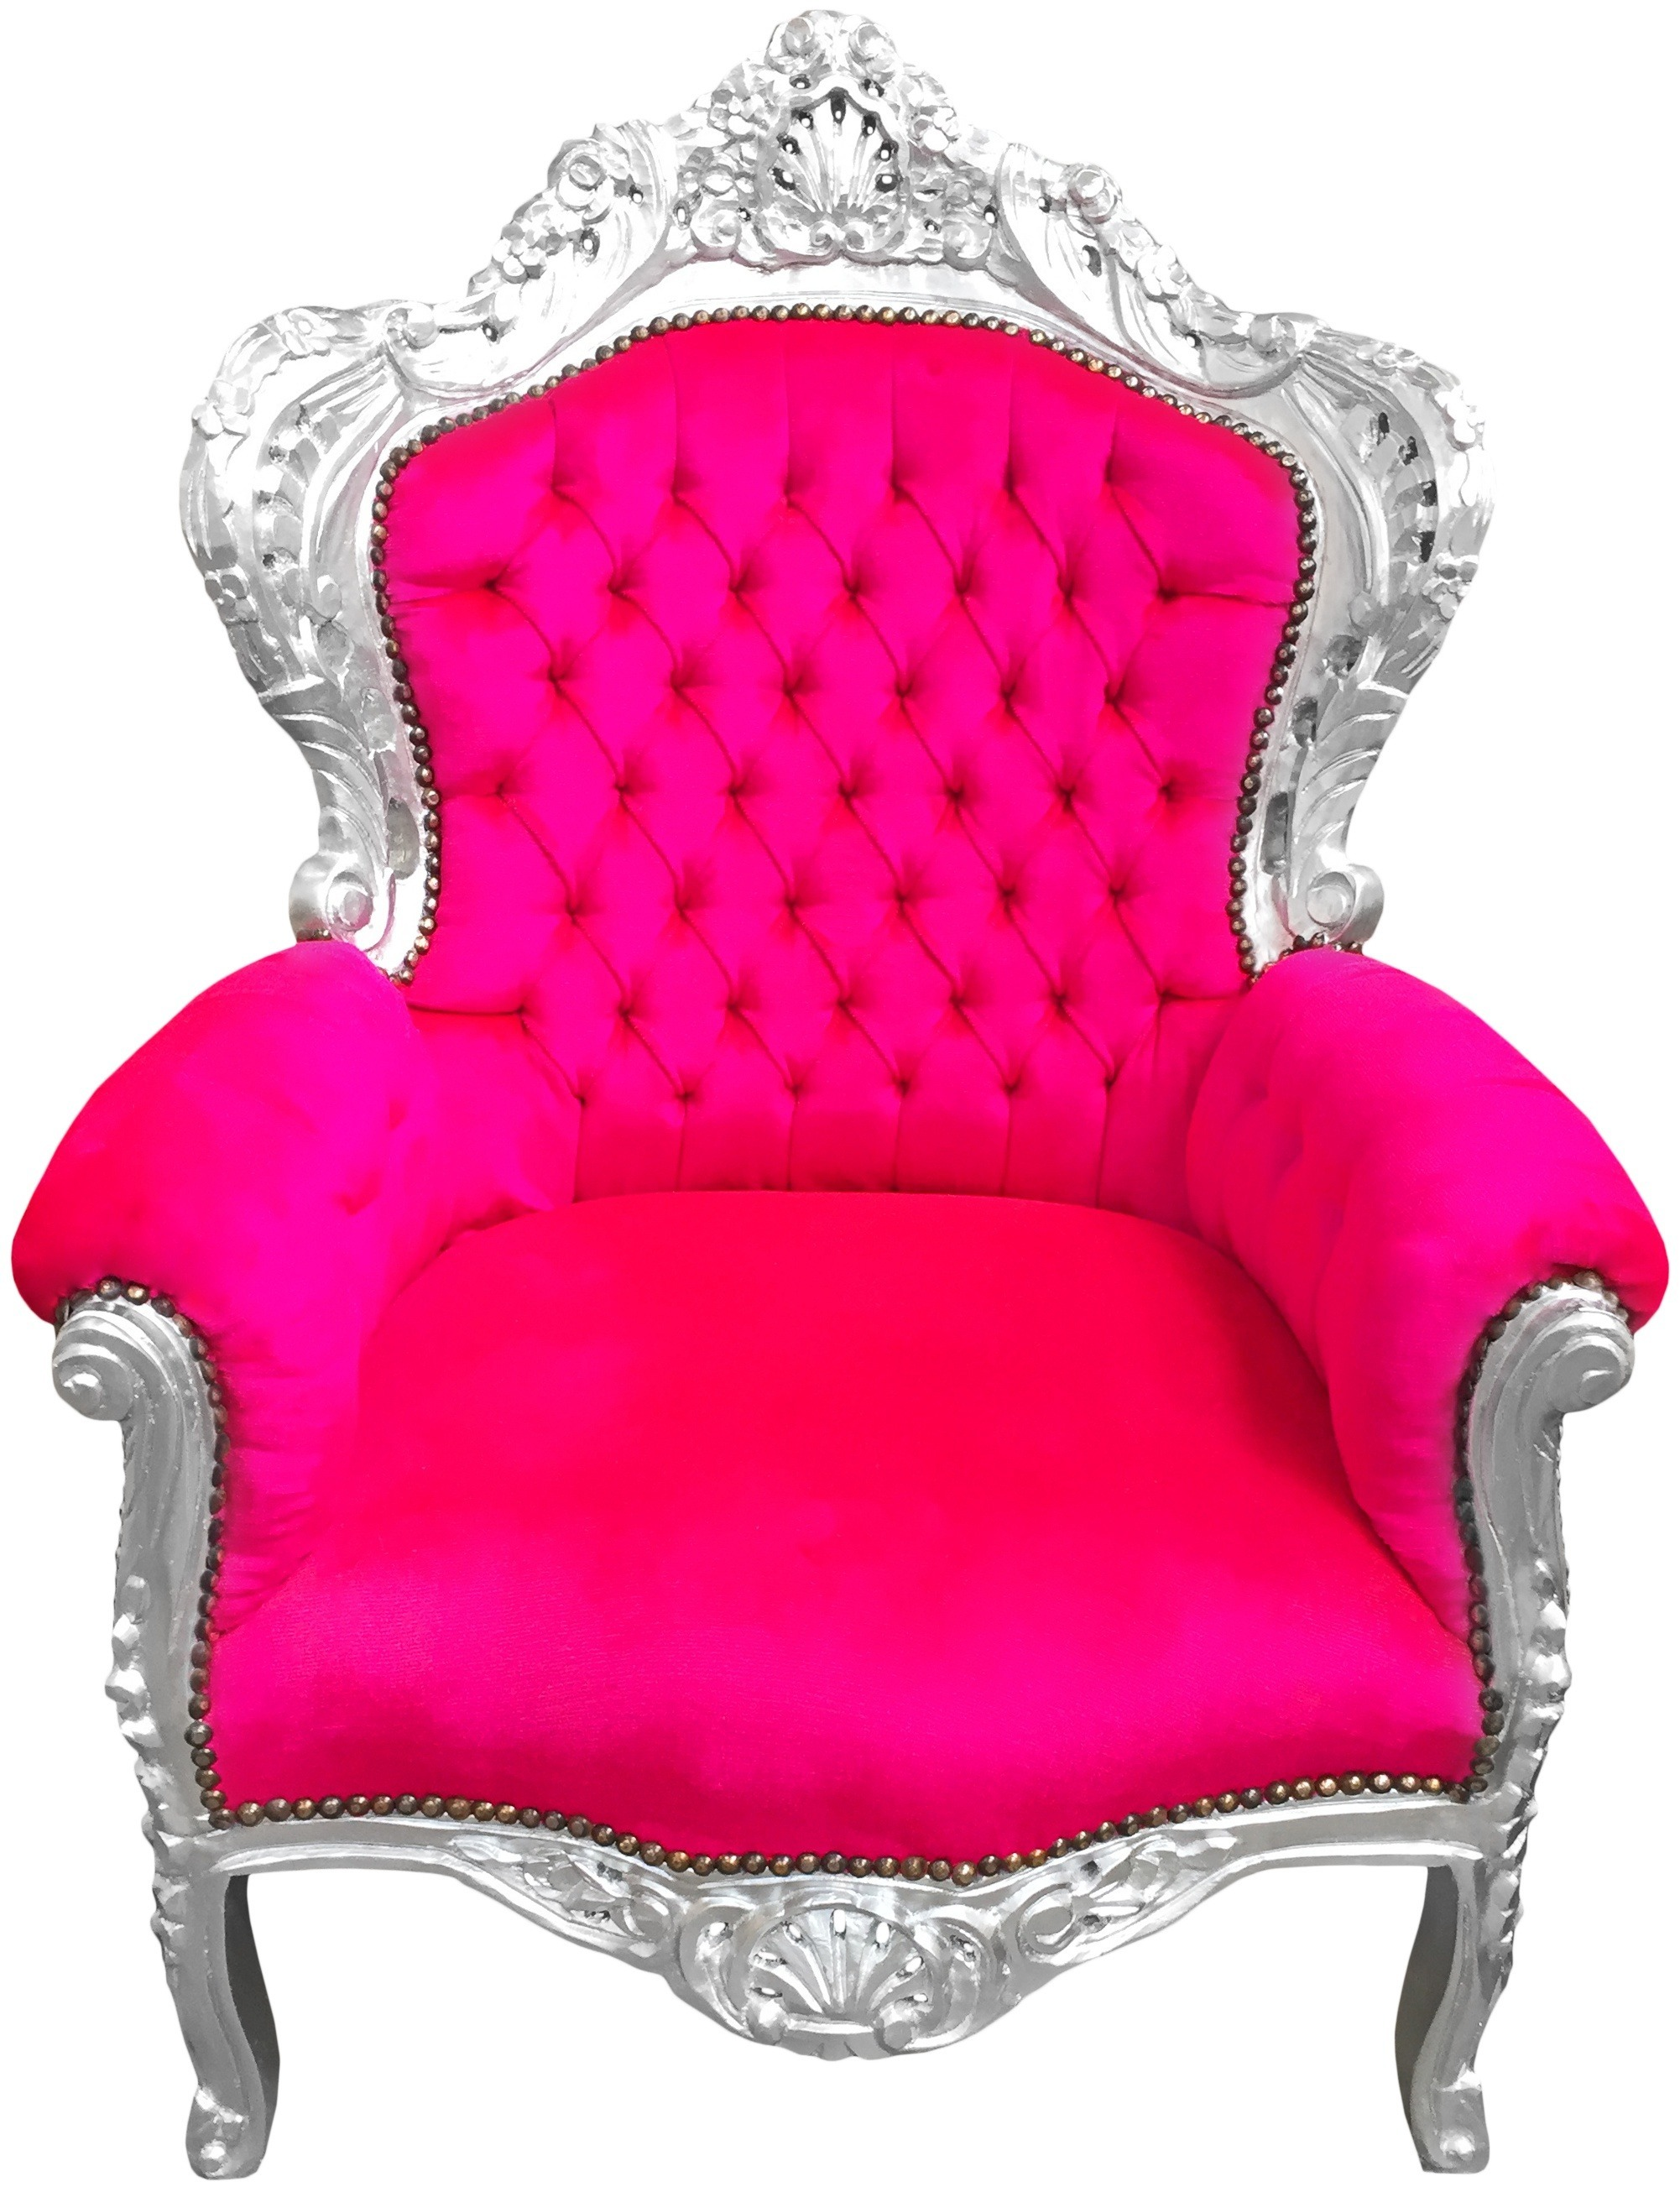 Deco Rose Fushia Salon big baroque style armchair fuchsia pink velvet and silver wood